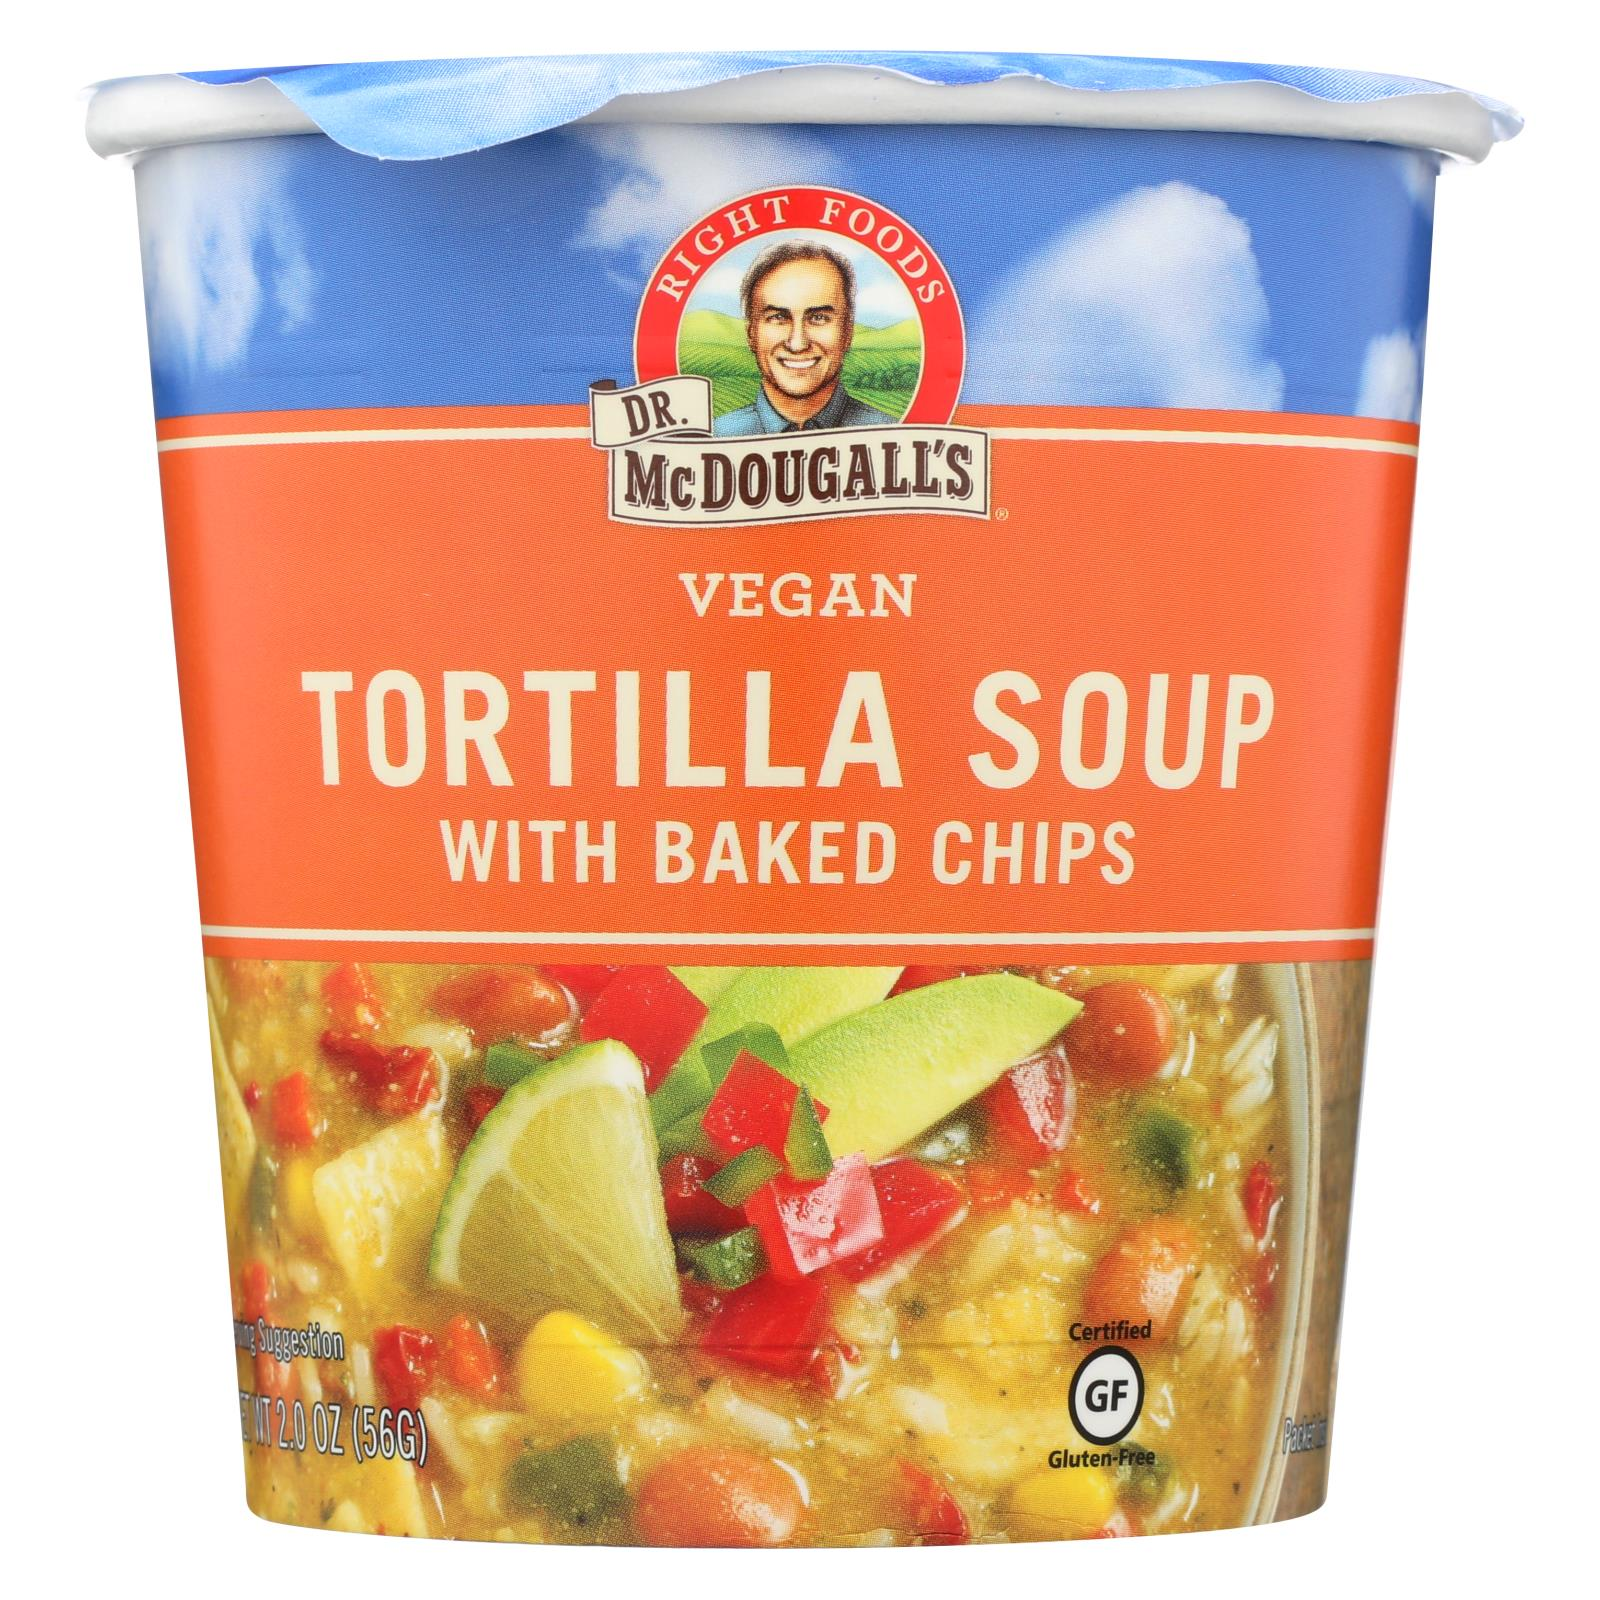 Dr. Mcdougall's Vegan Tortilla With Baked Chips Soup Big Cup - Case Of 6 - 2 Oz. HG0746875